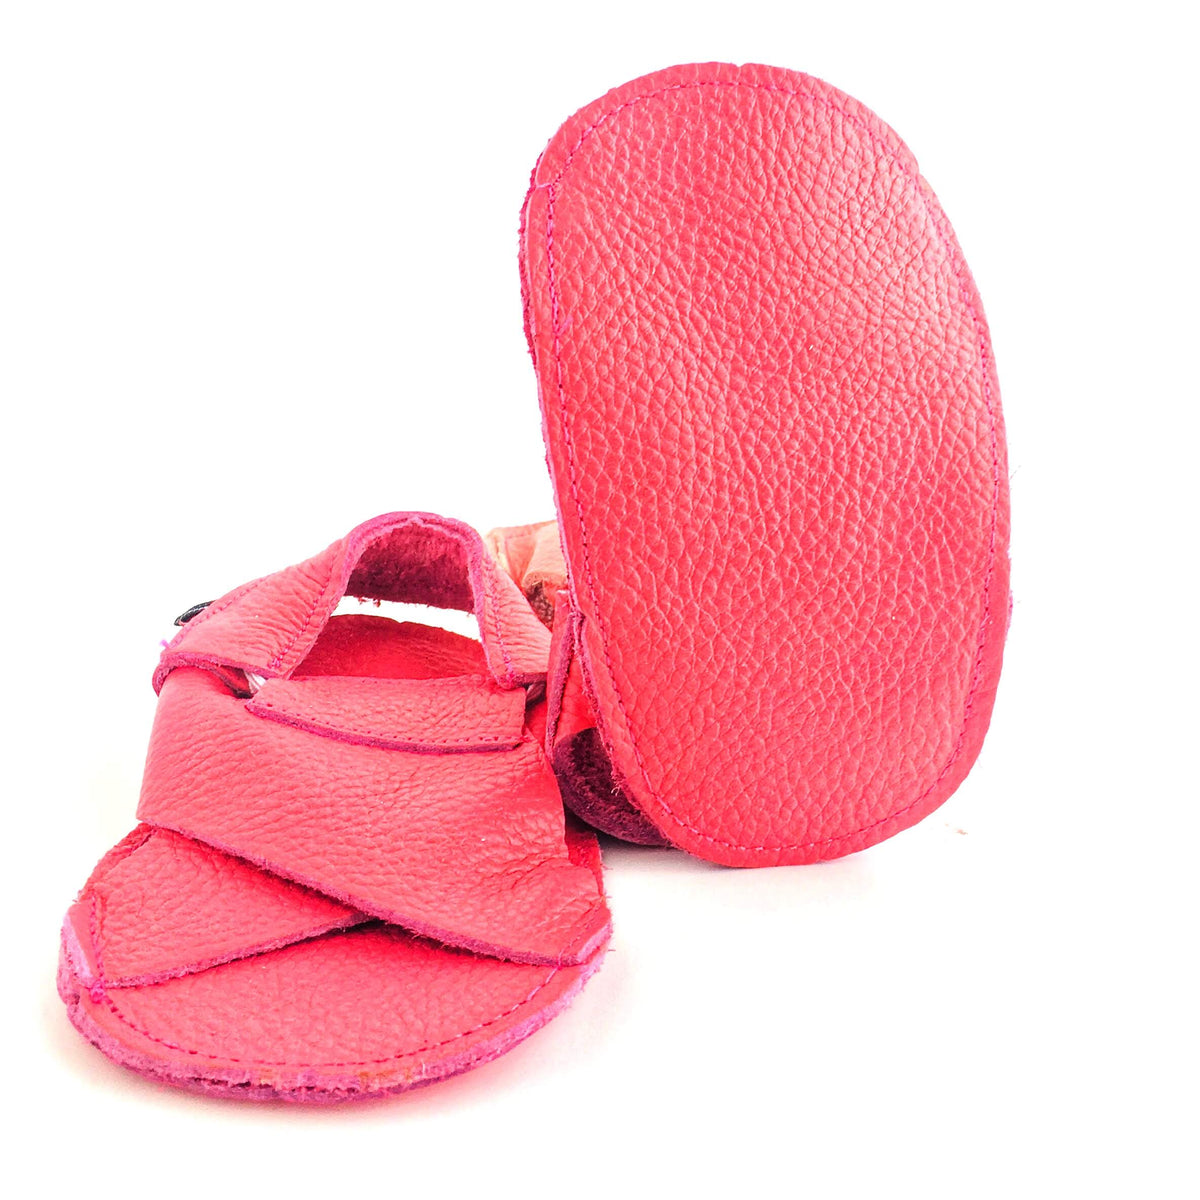 Cross Soft Sole Sandal Sole View Melon Colour